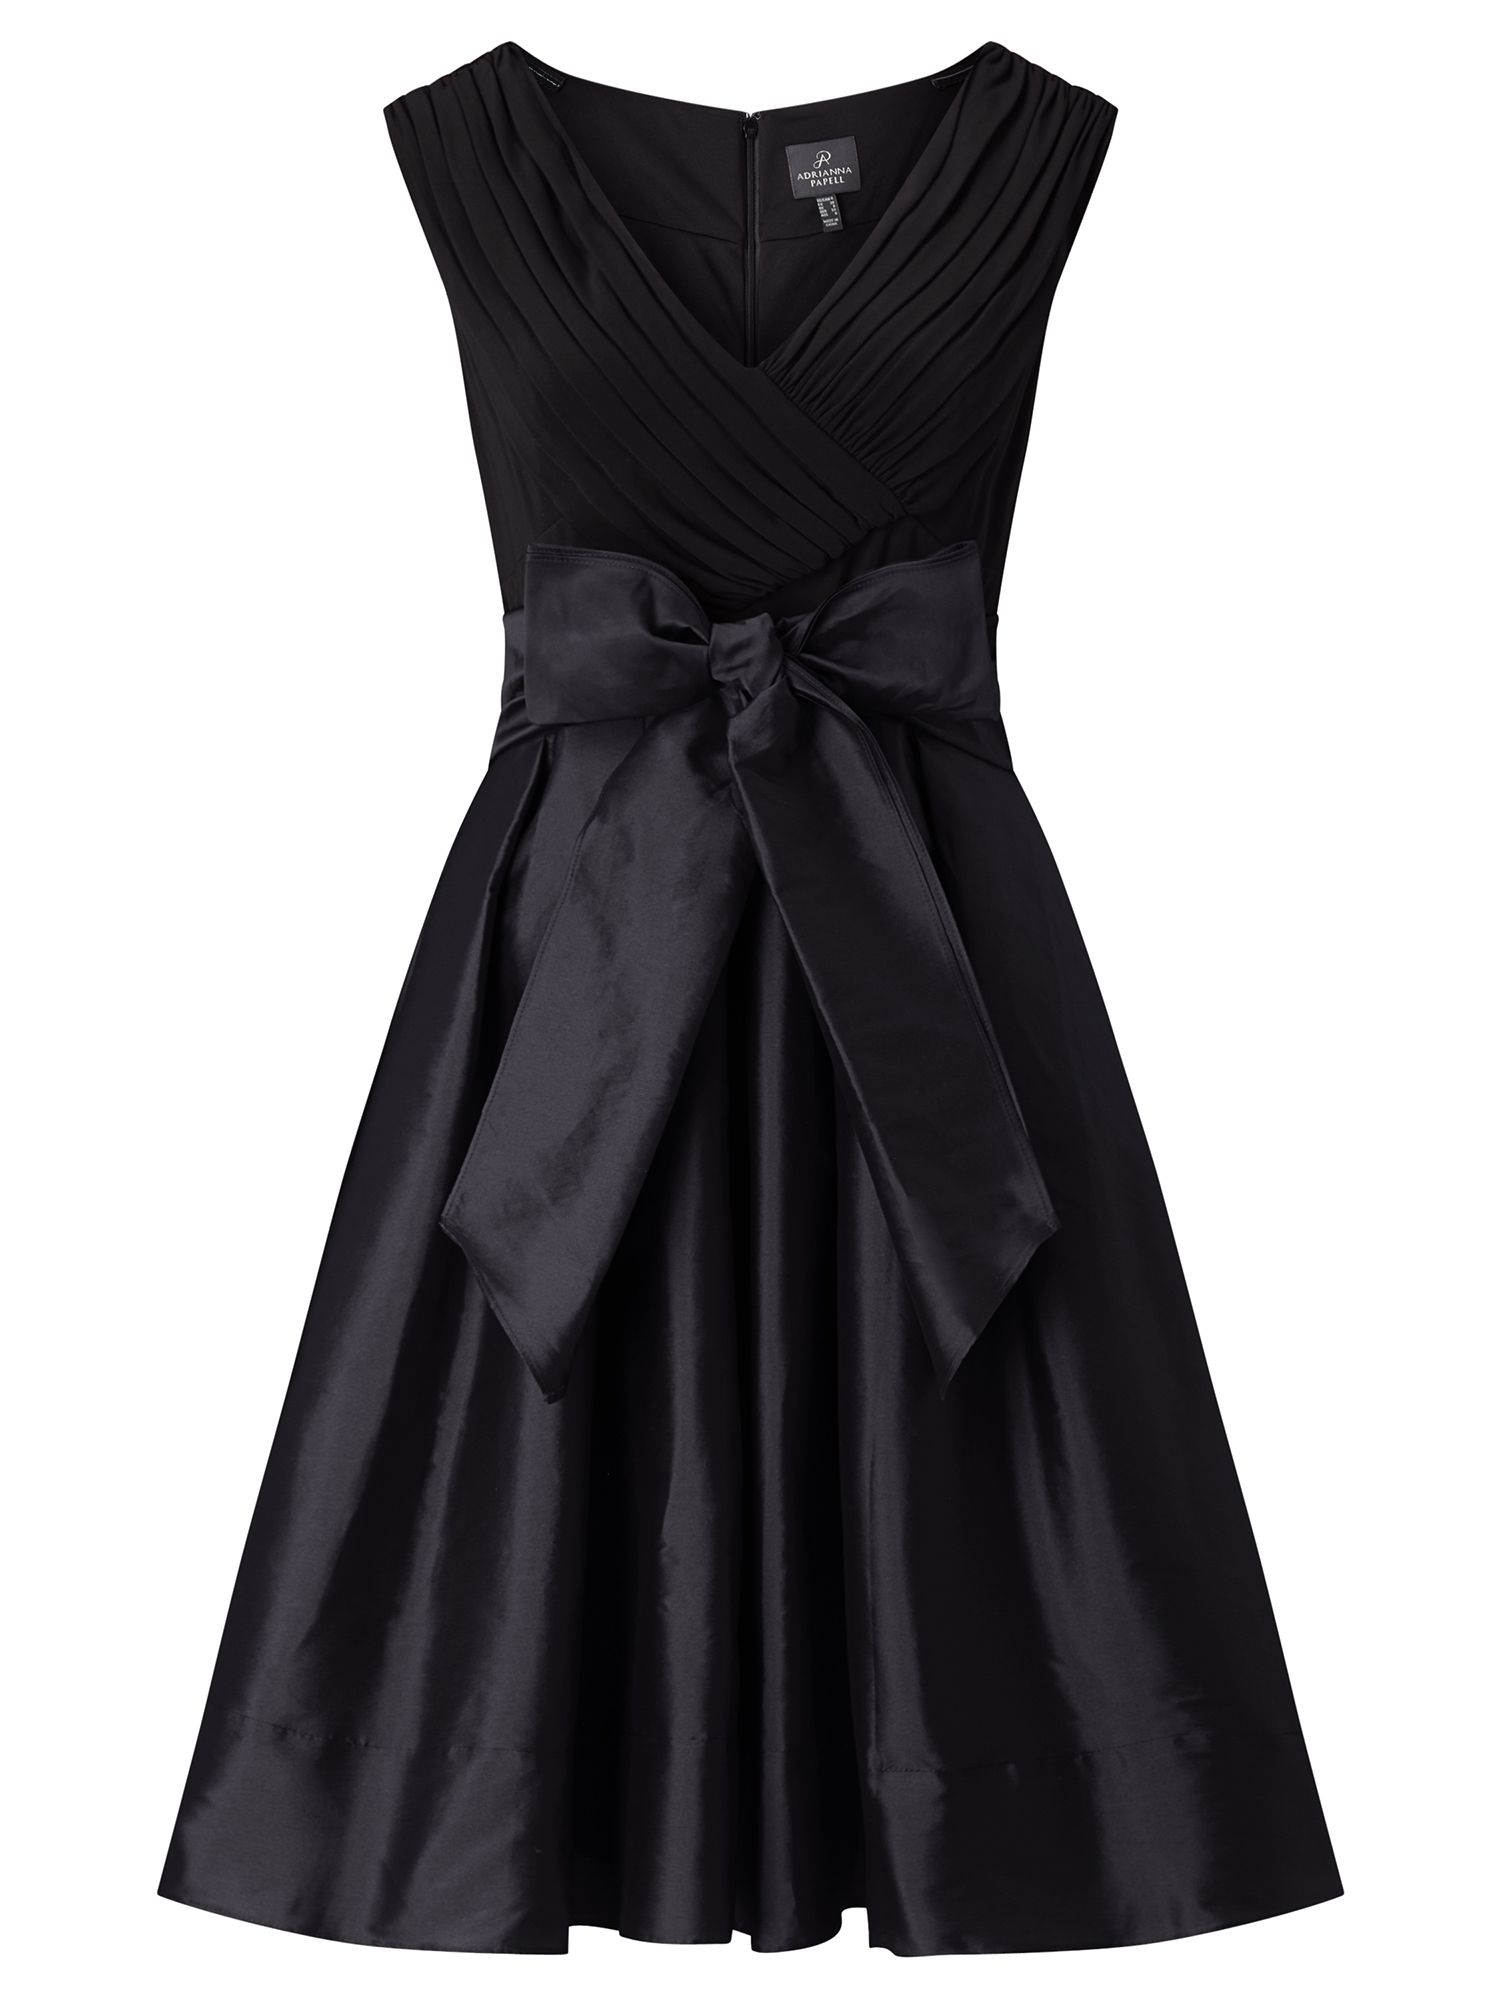 Adrianna Papell Fit And Flare Cocktail Dress, Black